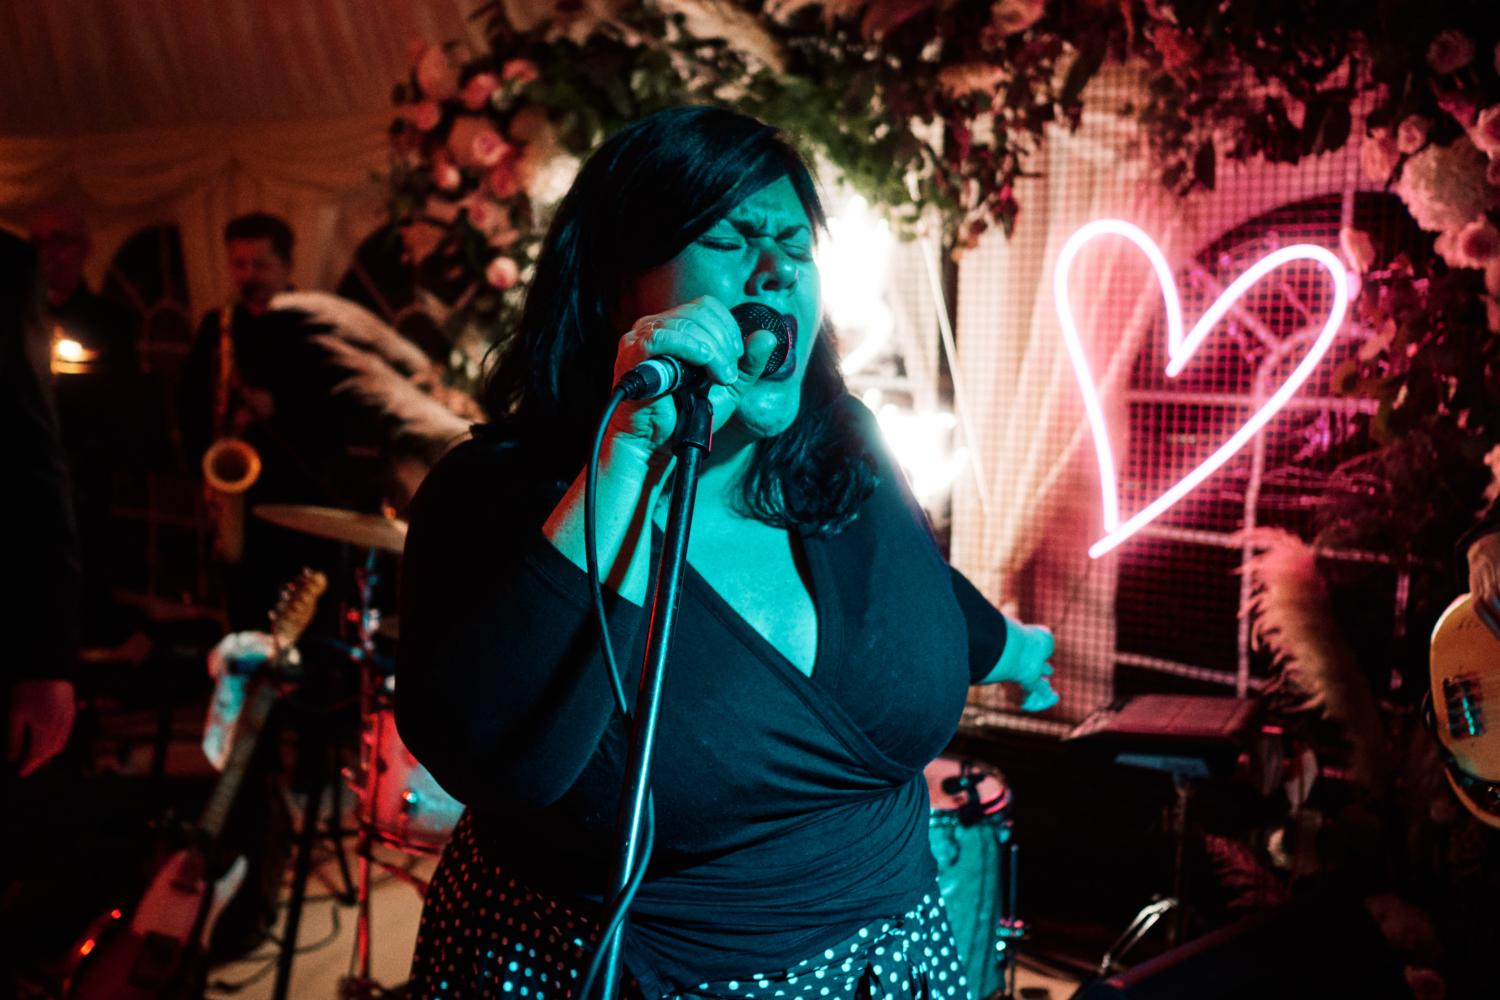 An expressive singer at a wedding, bathed in blue light